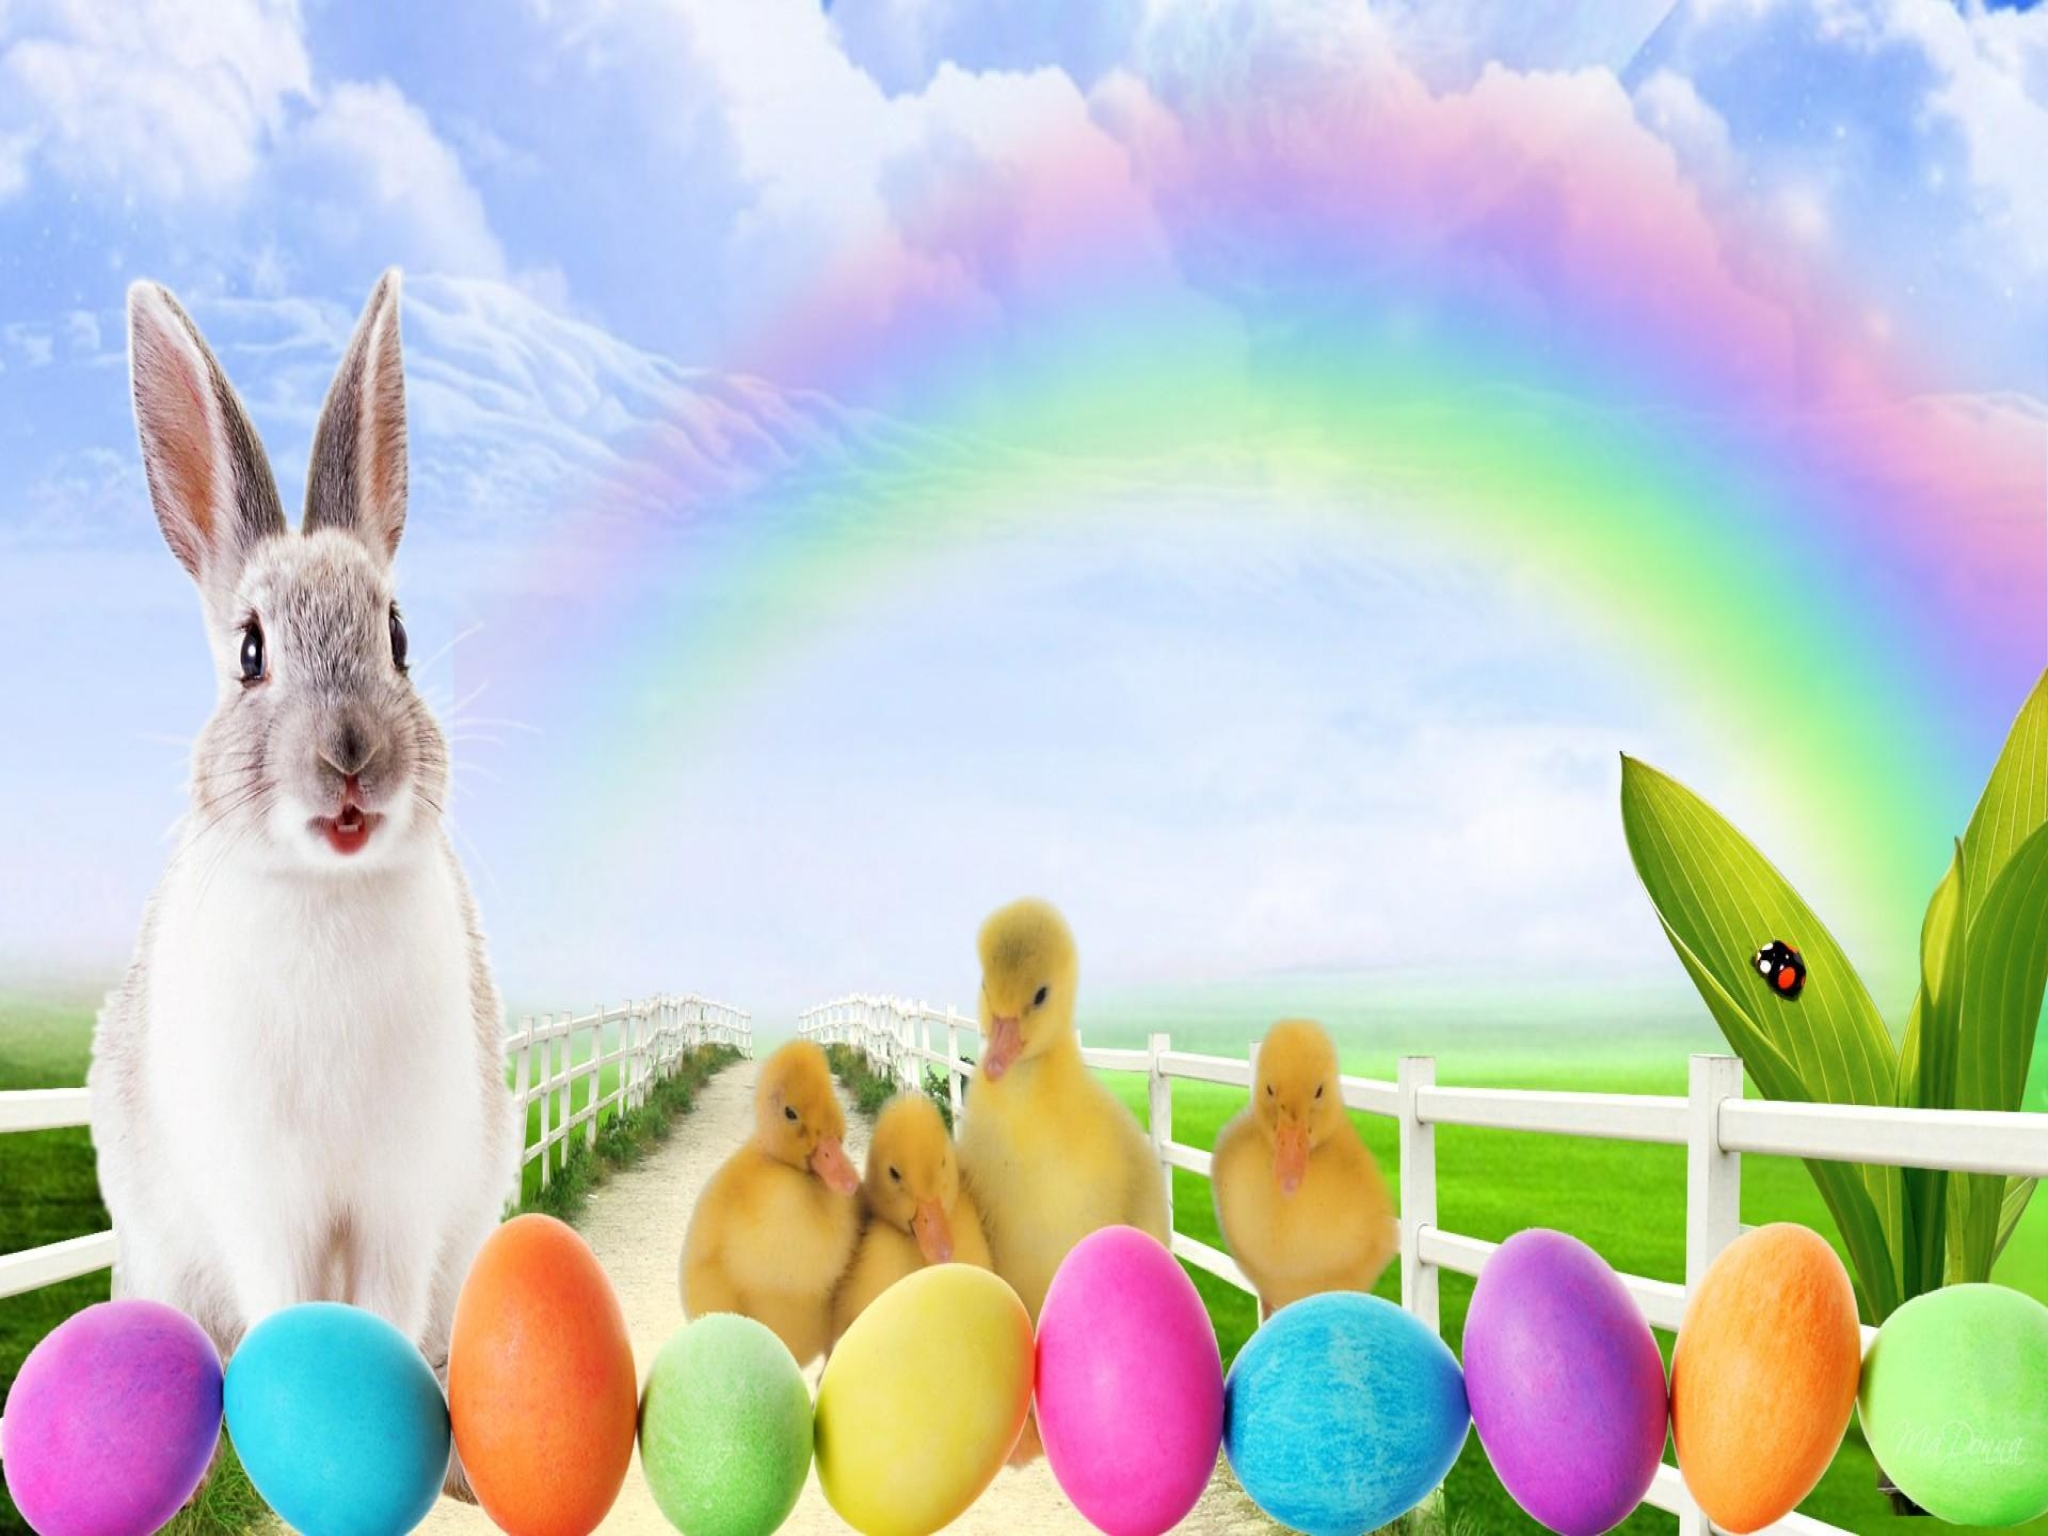 Easter Egg Rabbit Wallpapers ID718938